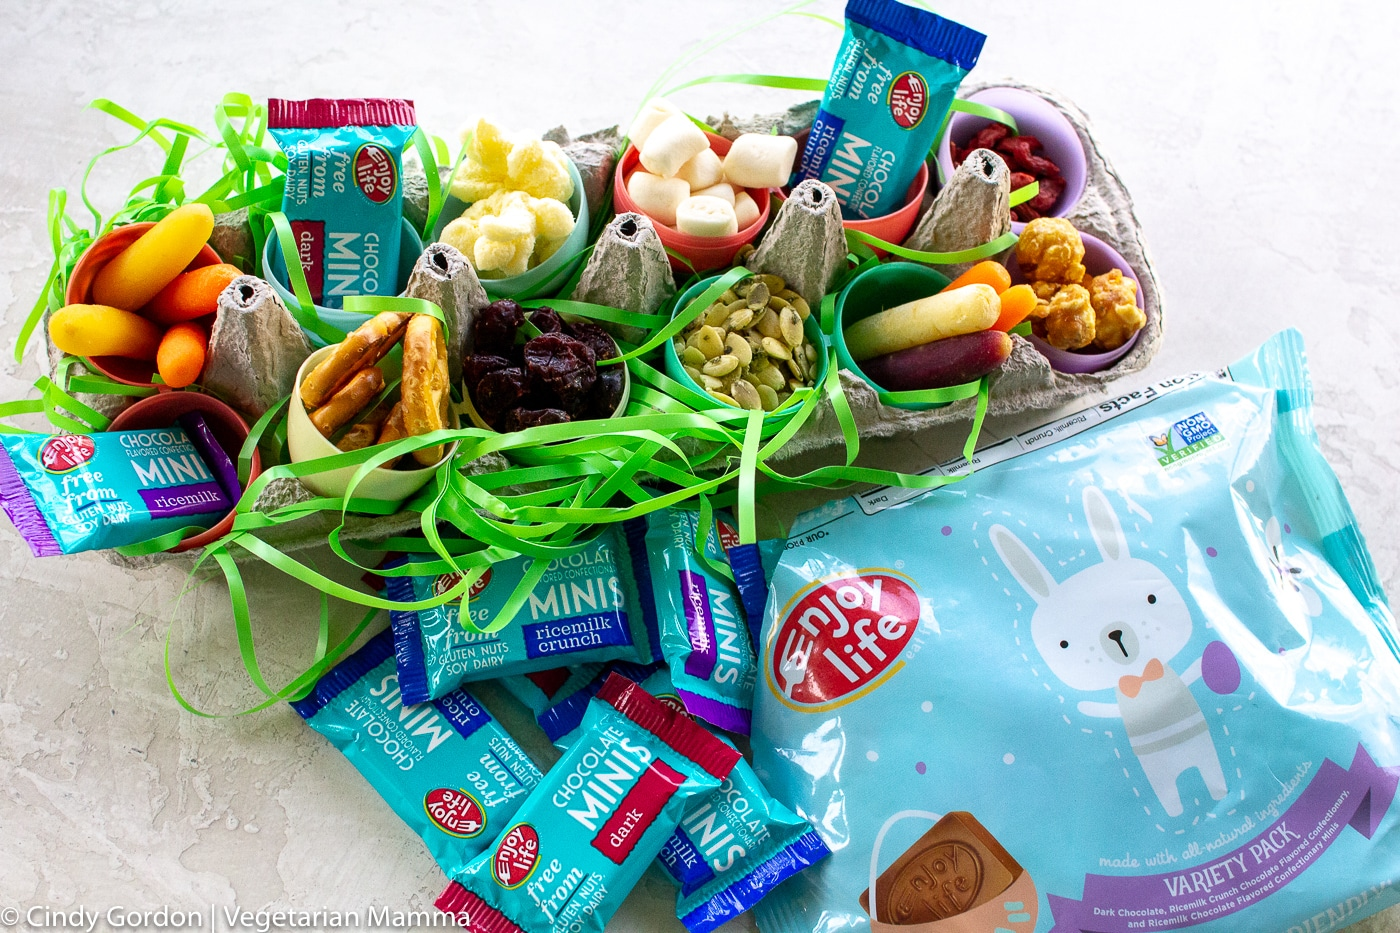 treats in open plastic eggs in an egg carton for easy snacking